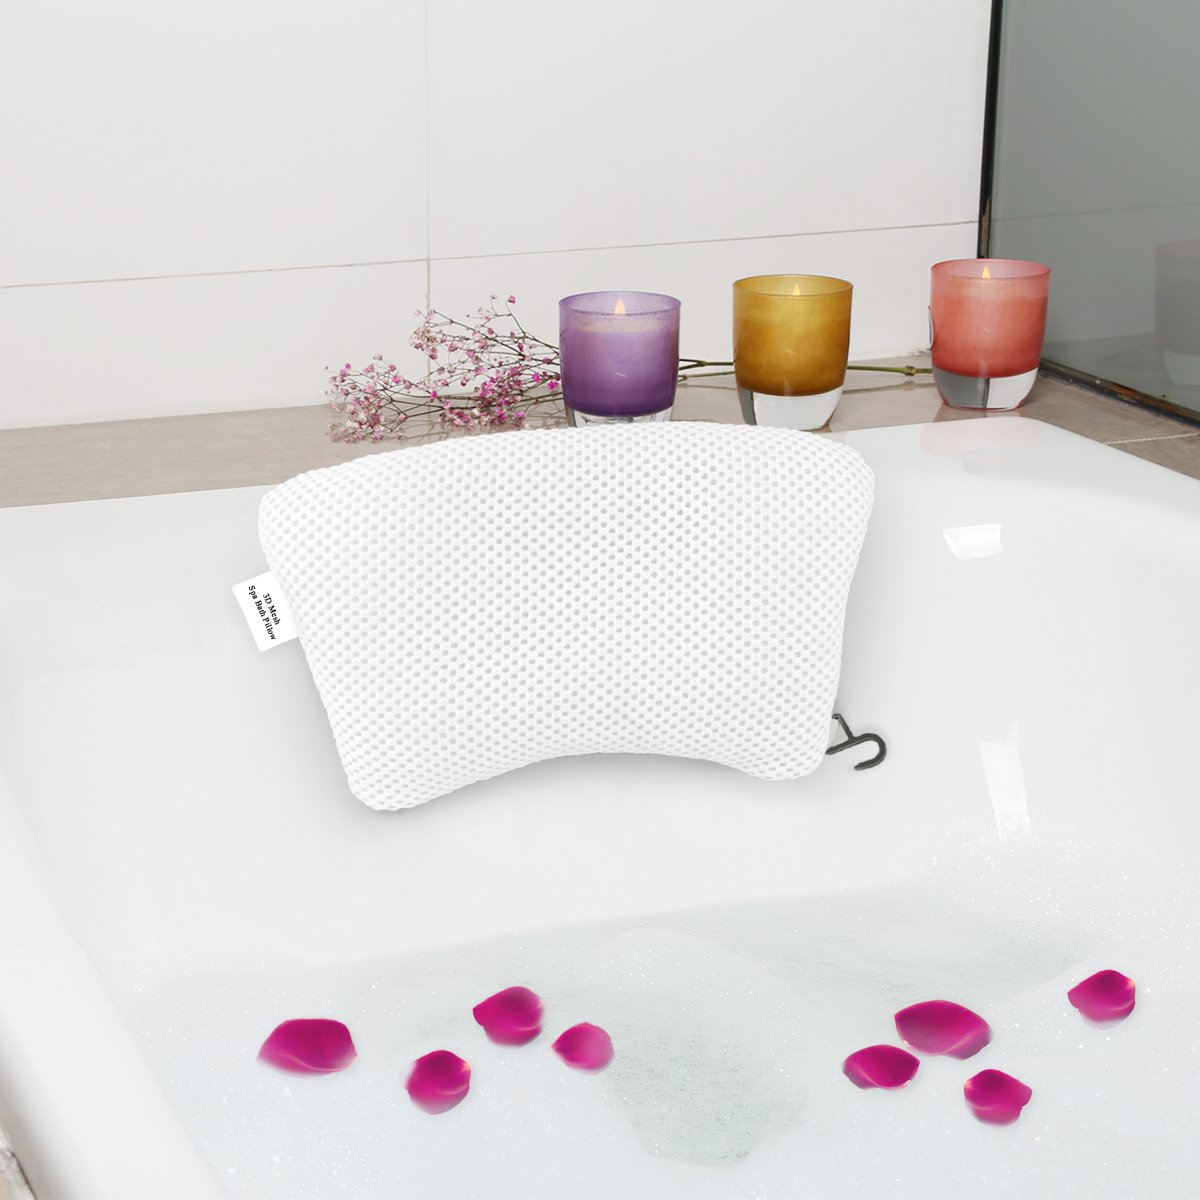 TakCool Luxury Spa Bath Pillow with Non-Slip Suction Cups Unique Curve Shaped Bathtub Pillow for Neck Head Support Quick Drying Anti-Bacterial Bath Pillows Fits Any Tub